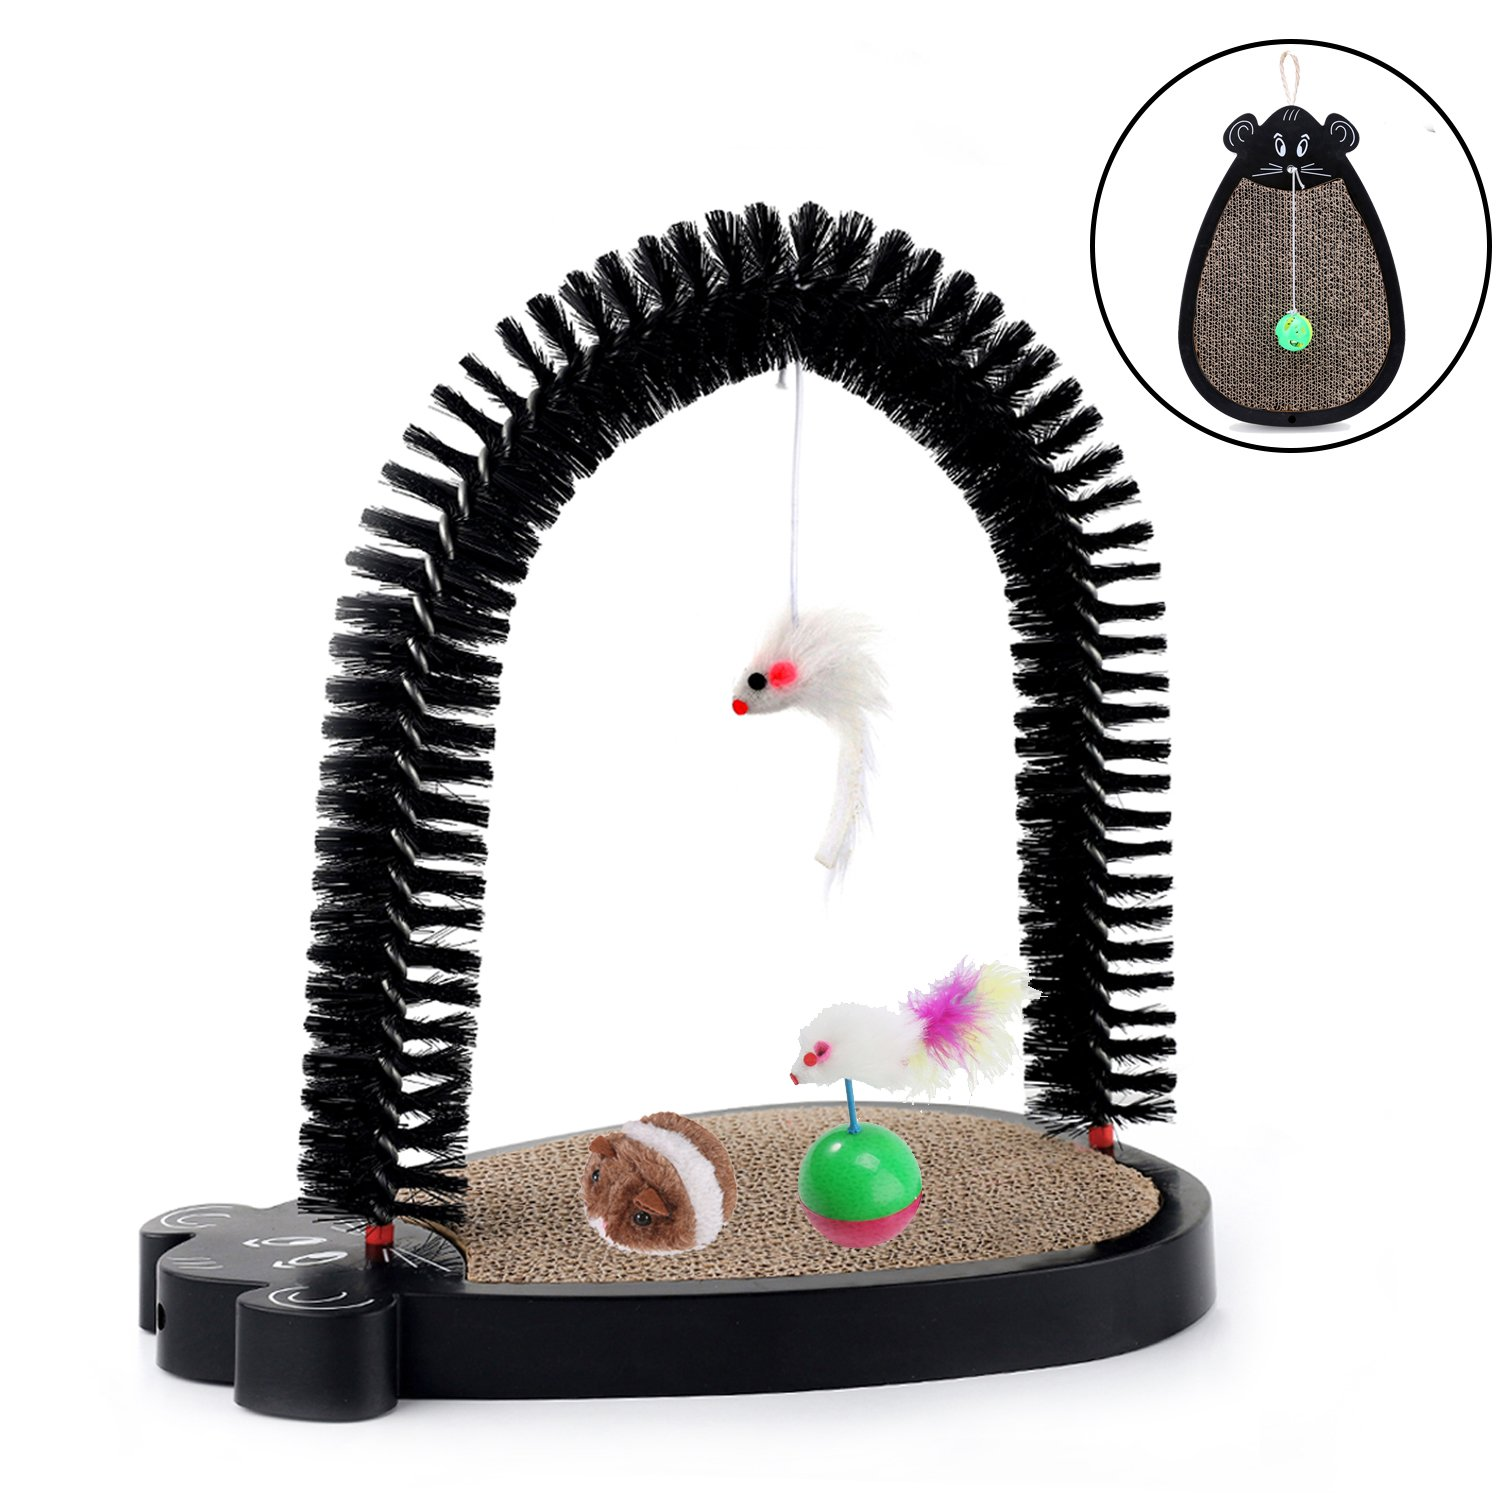 Chengyu Multi-Function Cat Scratch Board Toys Set - Including Hanging Cat Scratch Board with Armpit Arch Self Groomer, Tumbler Toy, Plush Mouse Toy, Spring Bell Ball and Catnip Fish Toy